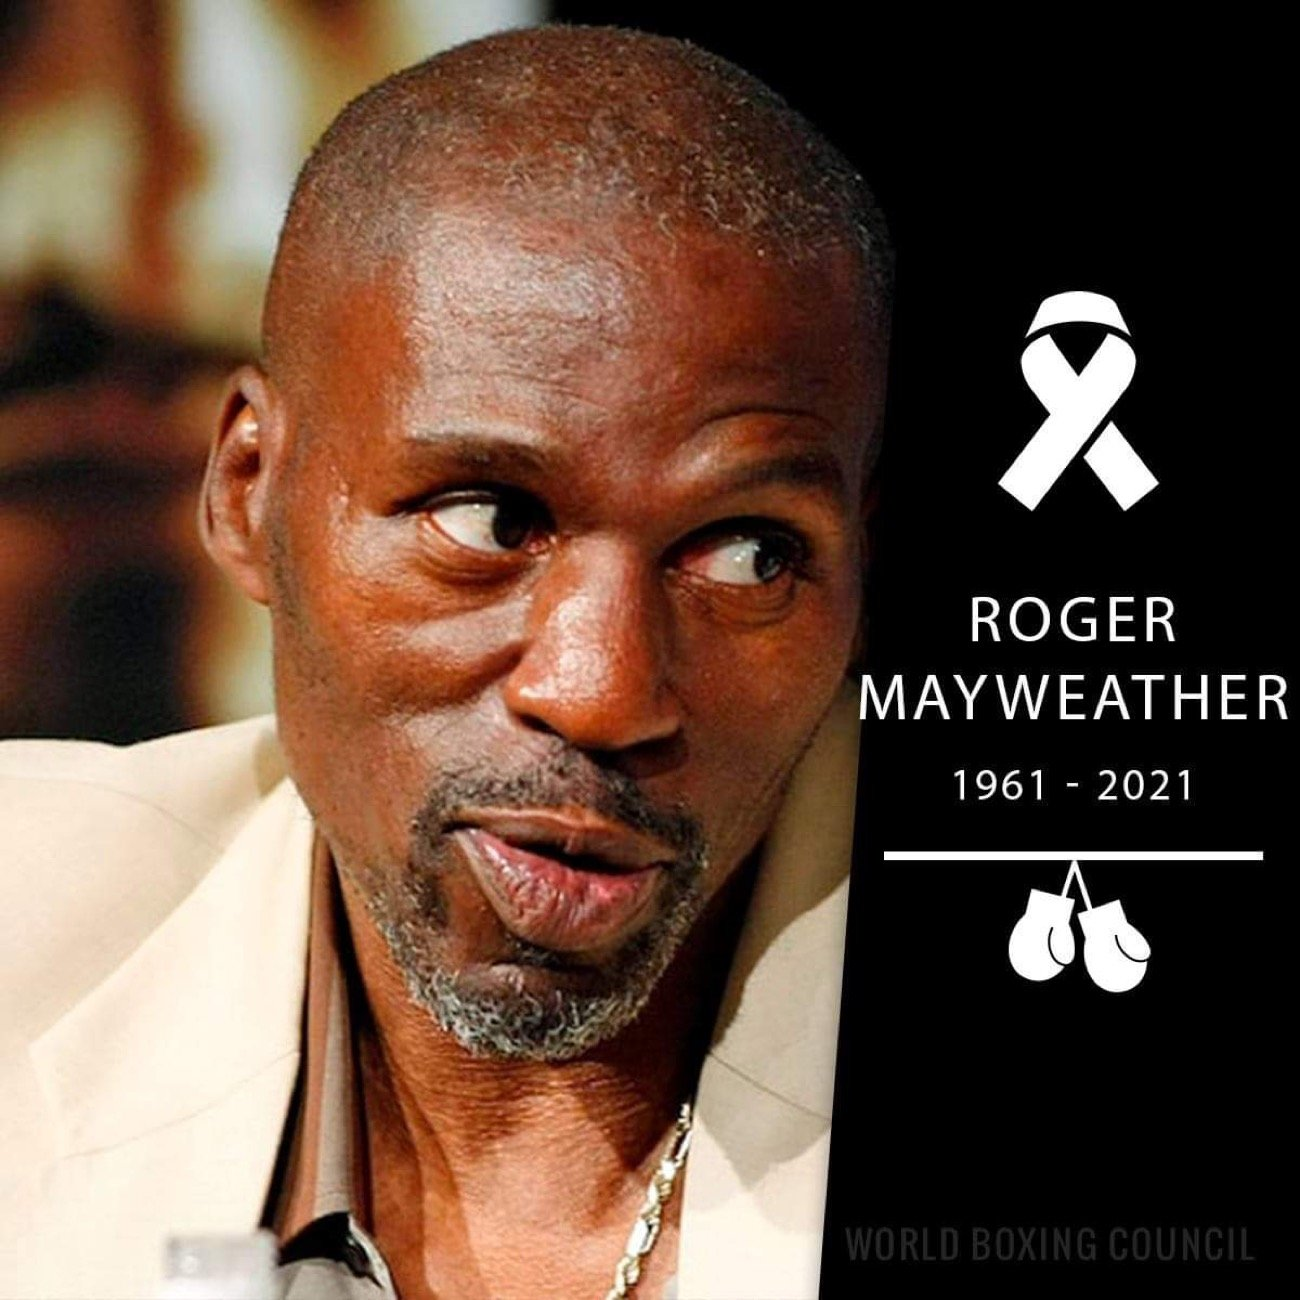 Roger Mayweather - Floyd Mayweather, along with the boxing world, mourns the death today of his uncle, former world champion and legendary trainer Roger Mayweather, after a long battle with diabetes.